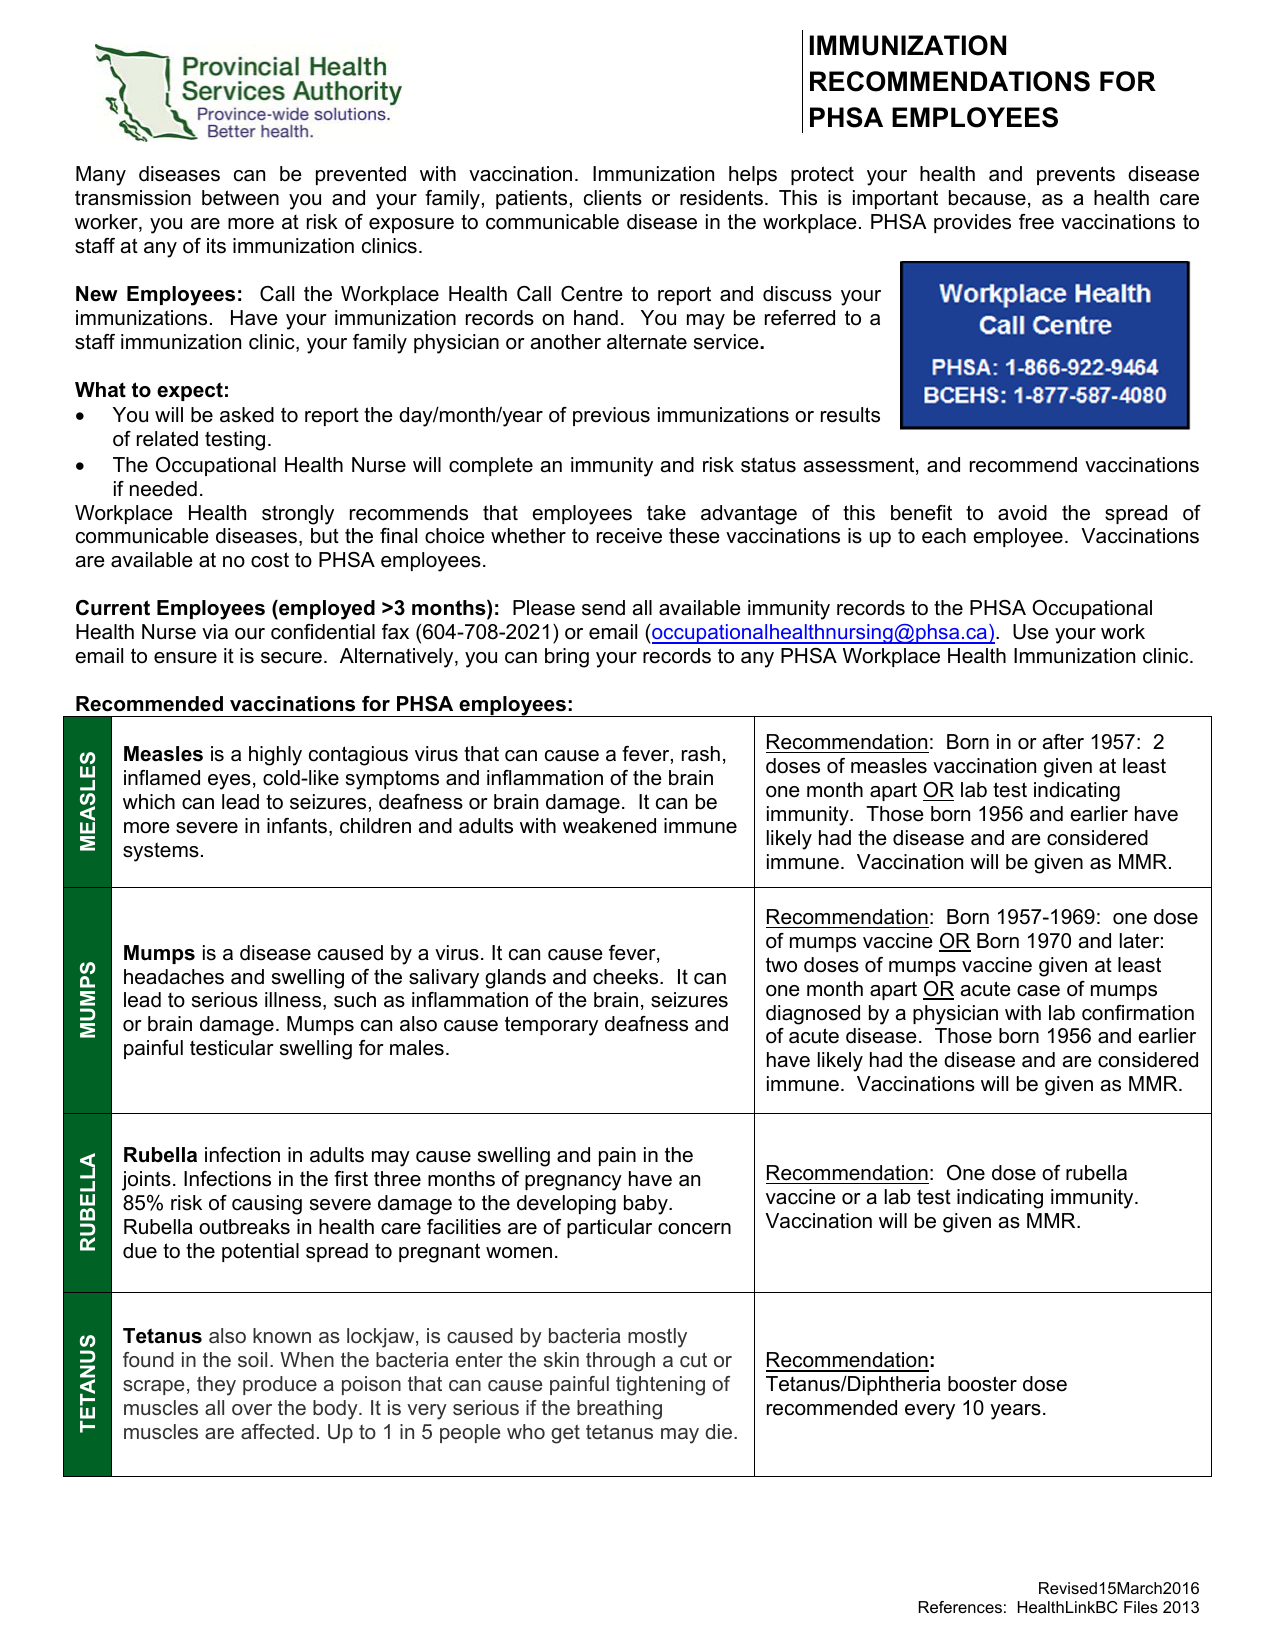 immunization recommendations for phsa employees